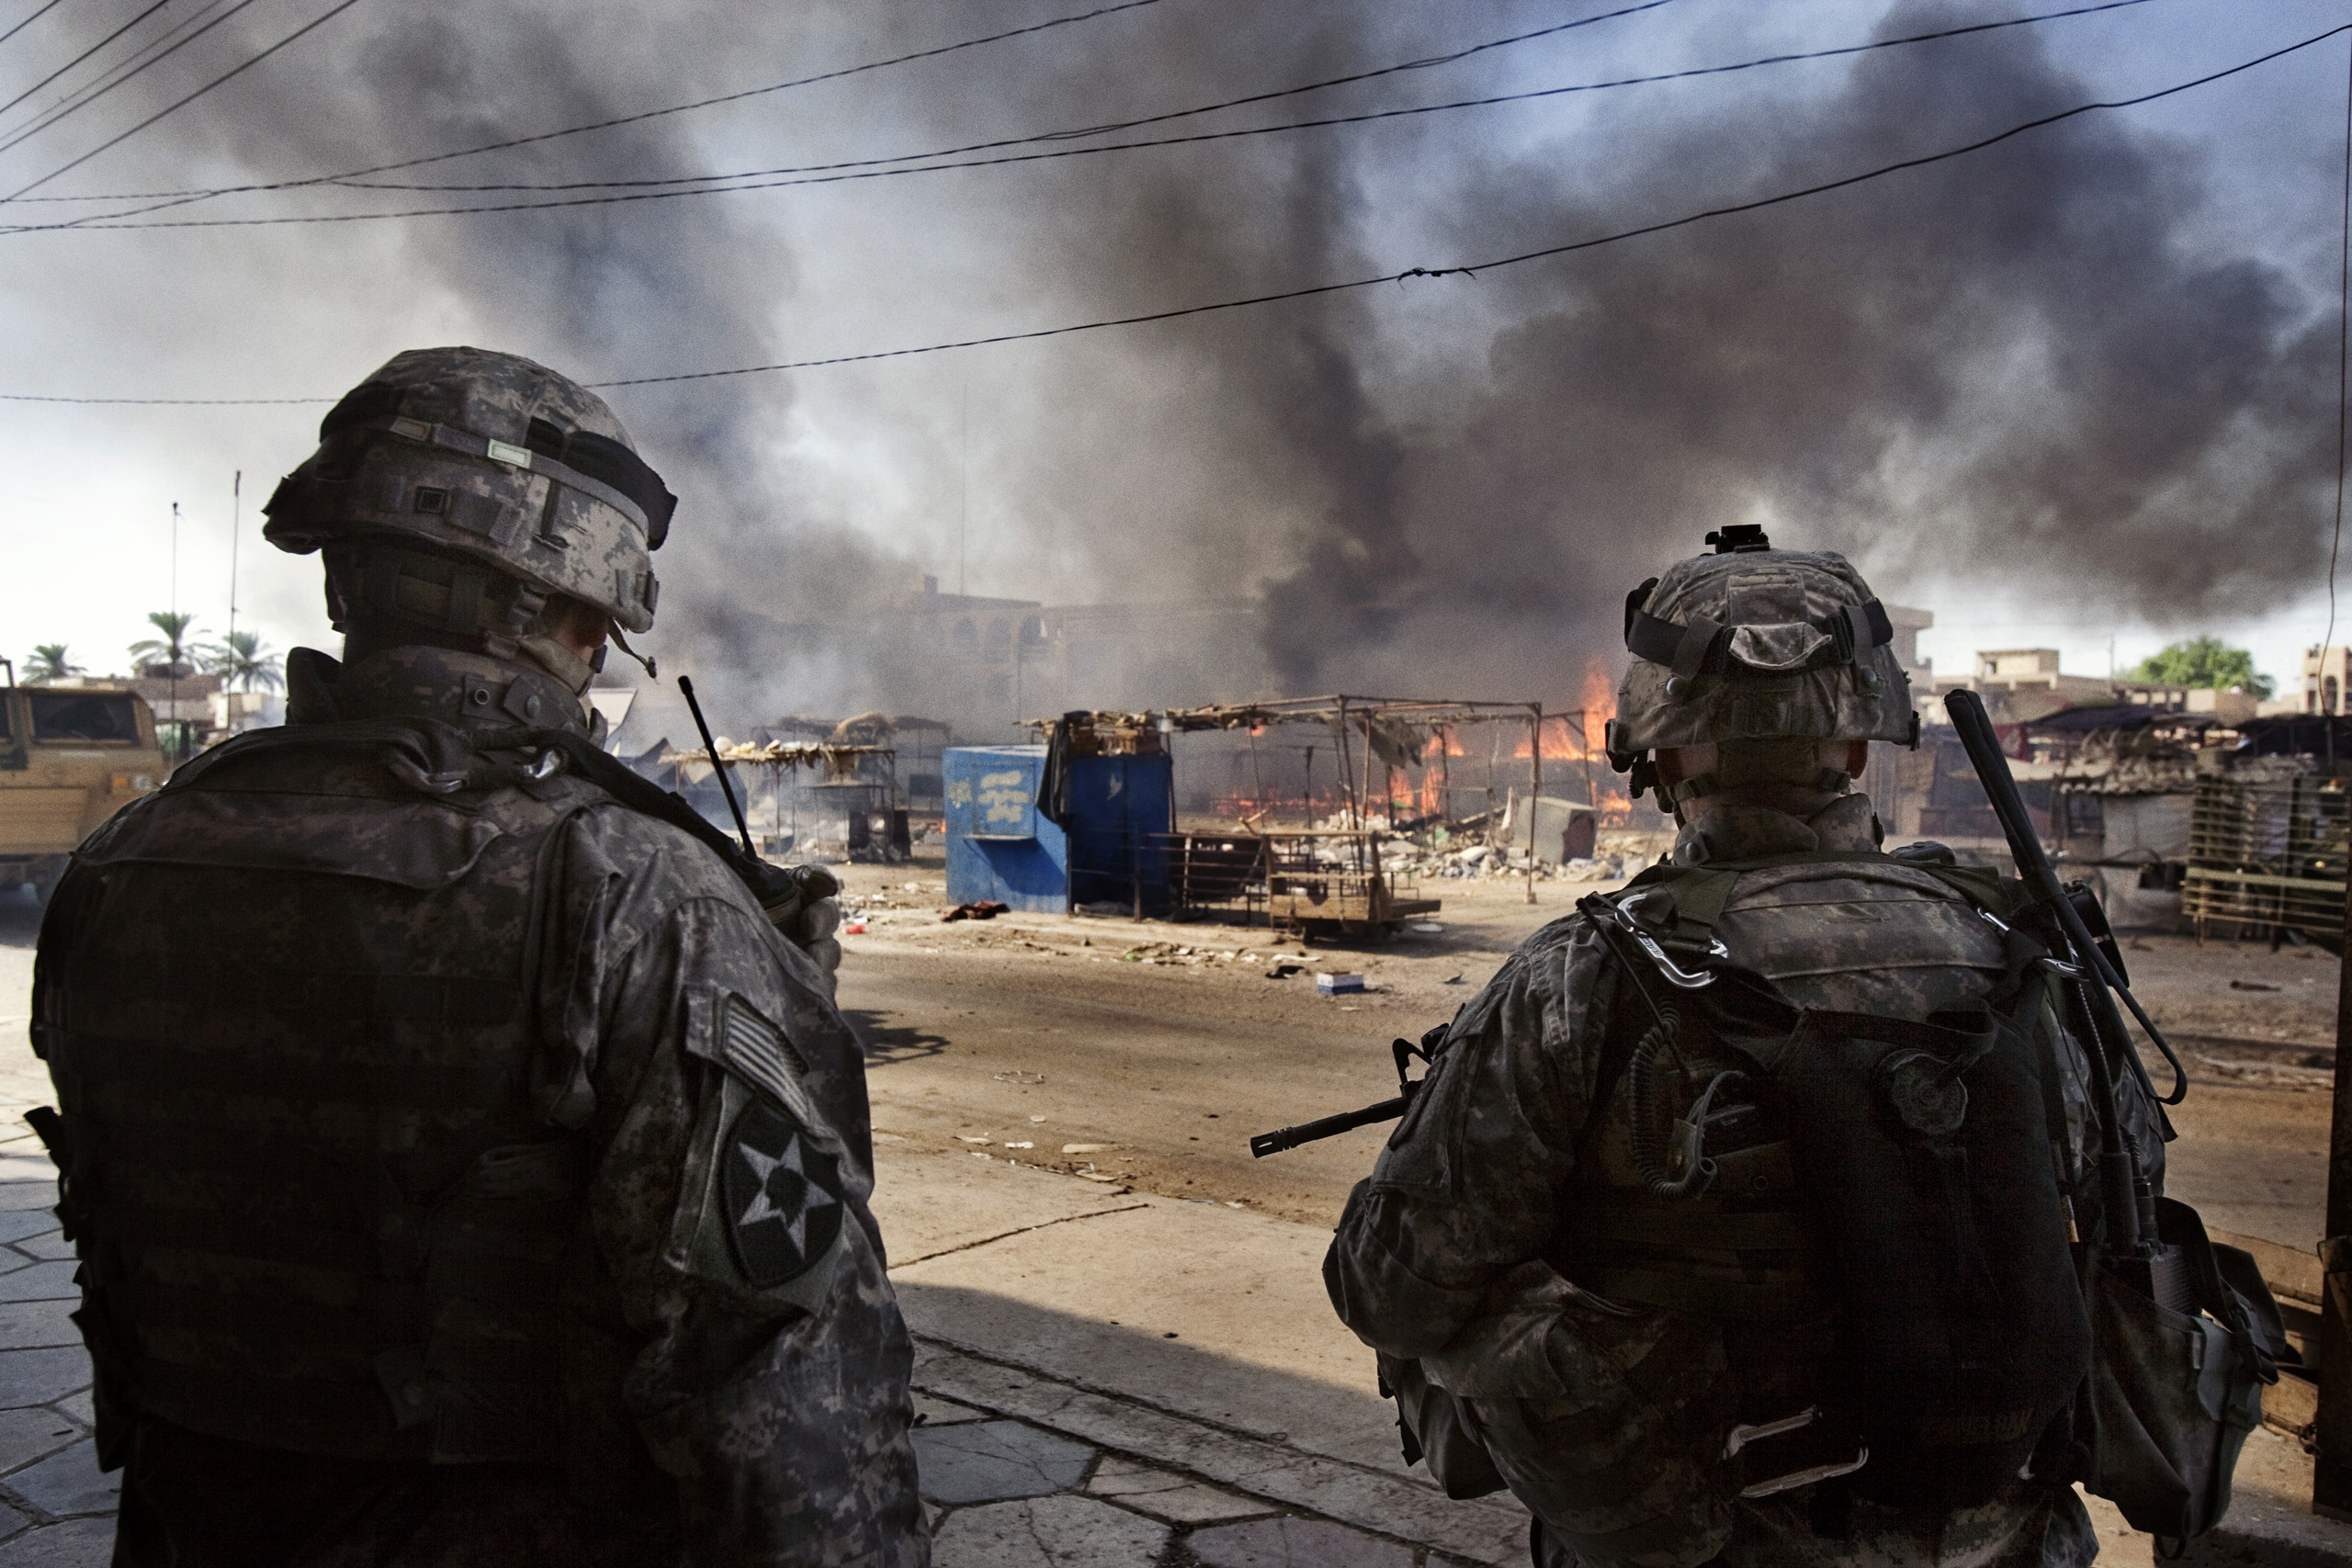 US soldiers of  the 2nd Battalion, 506th INF Regiment 101 Airborne DIV attached to 4th Brigade Combat Team 4th INF DIV  watch a fire  at a market in Al Dora, a neighborhood controlled by Sunni extremists, Baghdad, Iraq, Sept. 28, 2006.